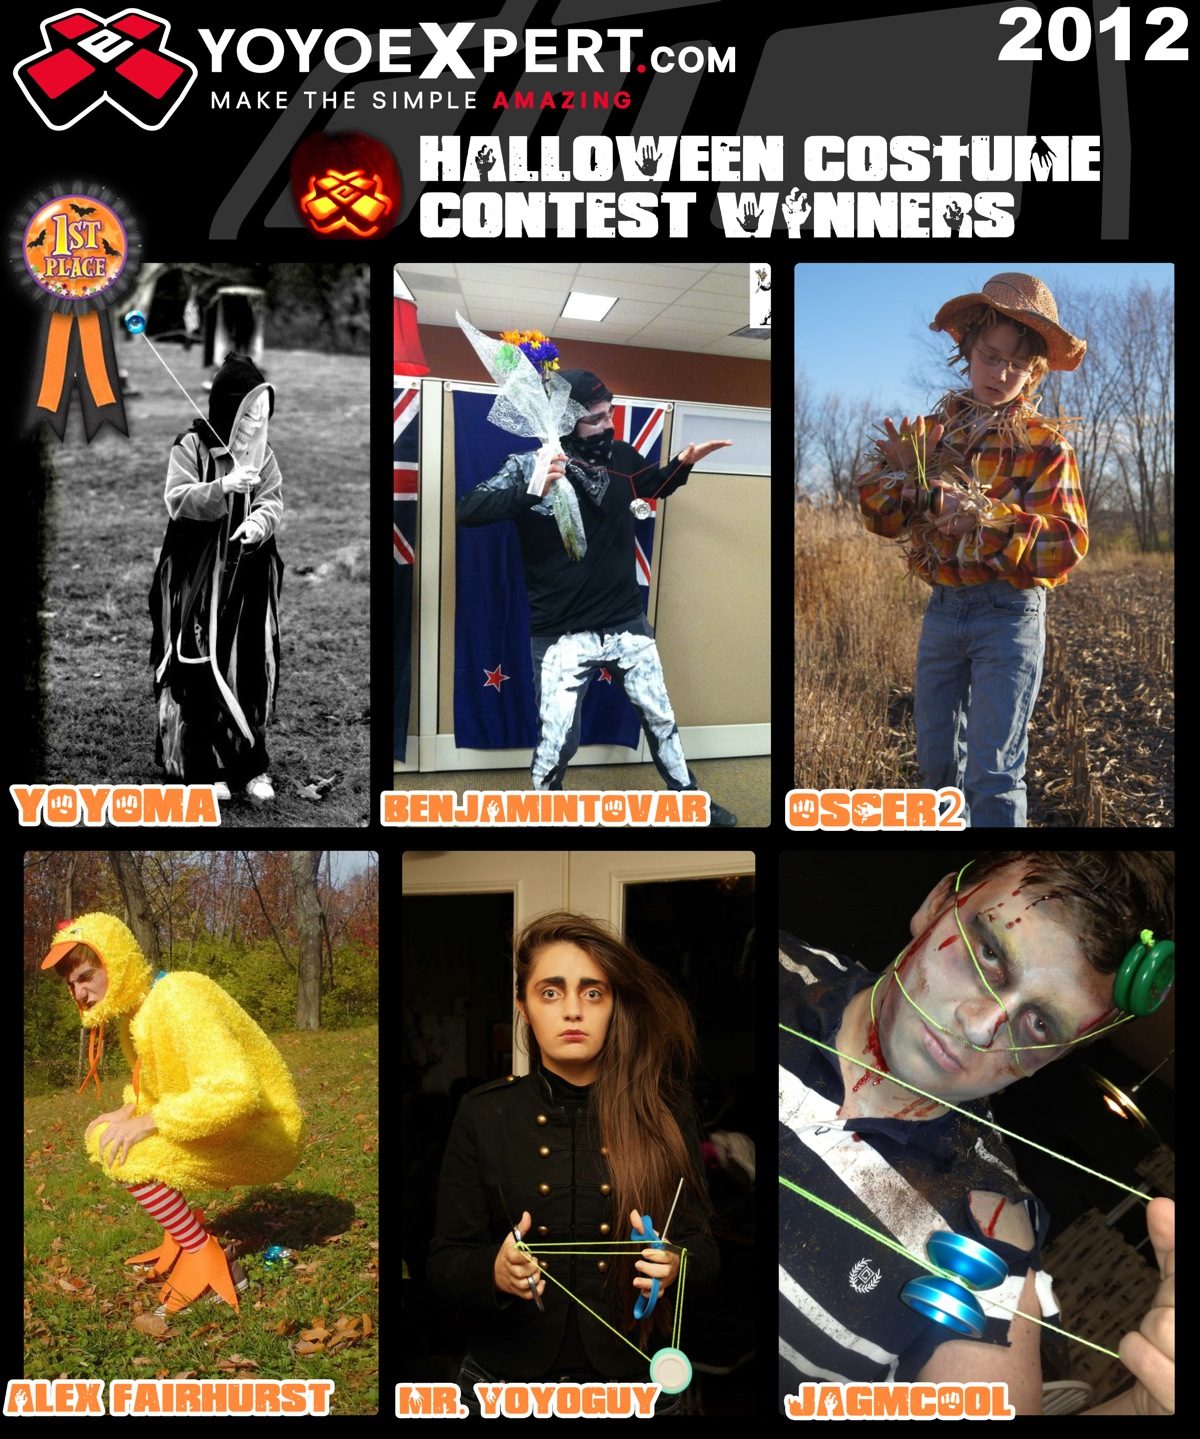 2012 YoYoExpert Halloween Costume Contest Results!